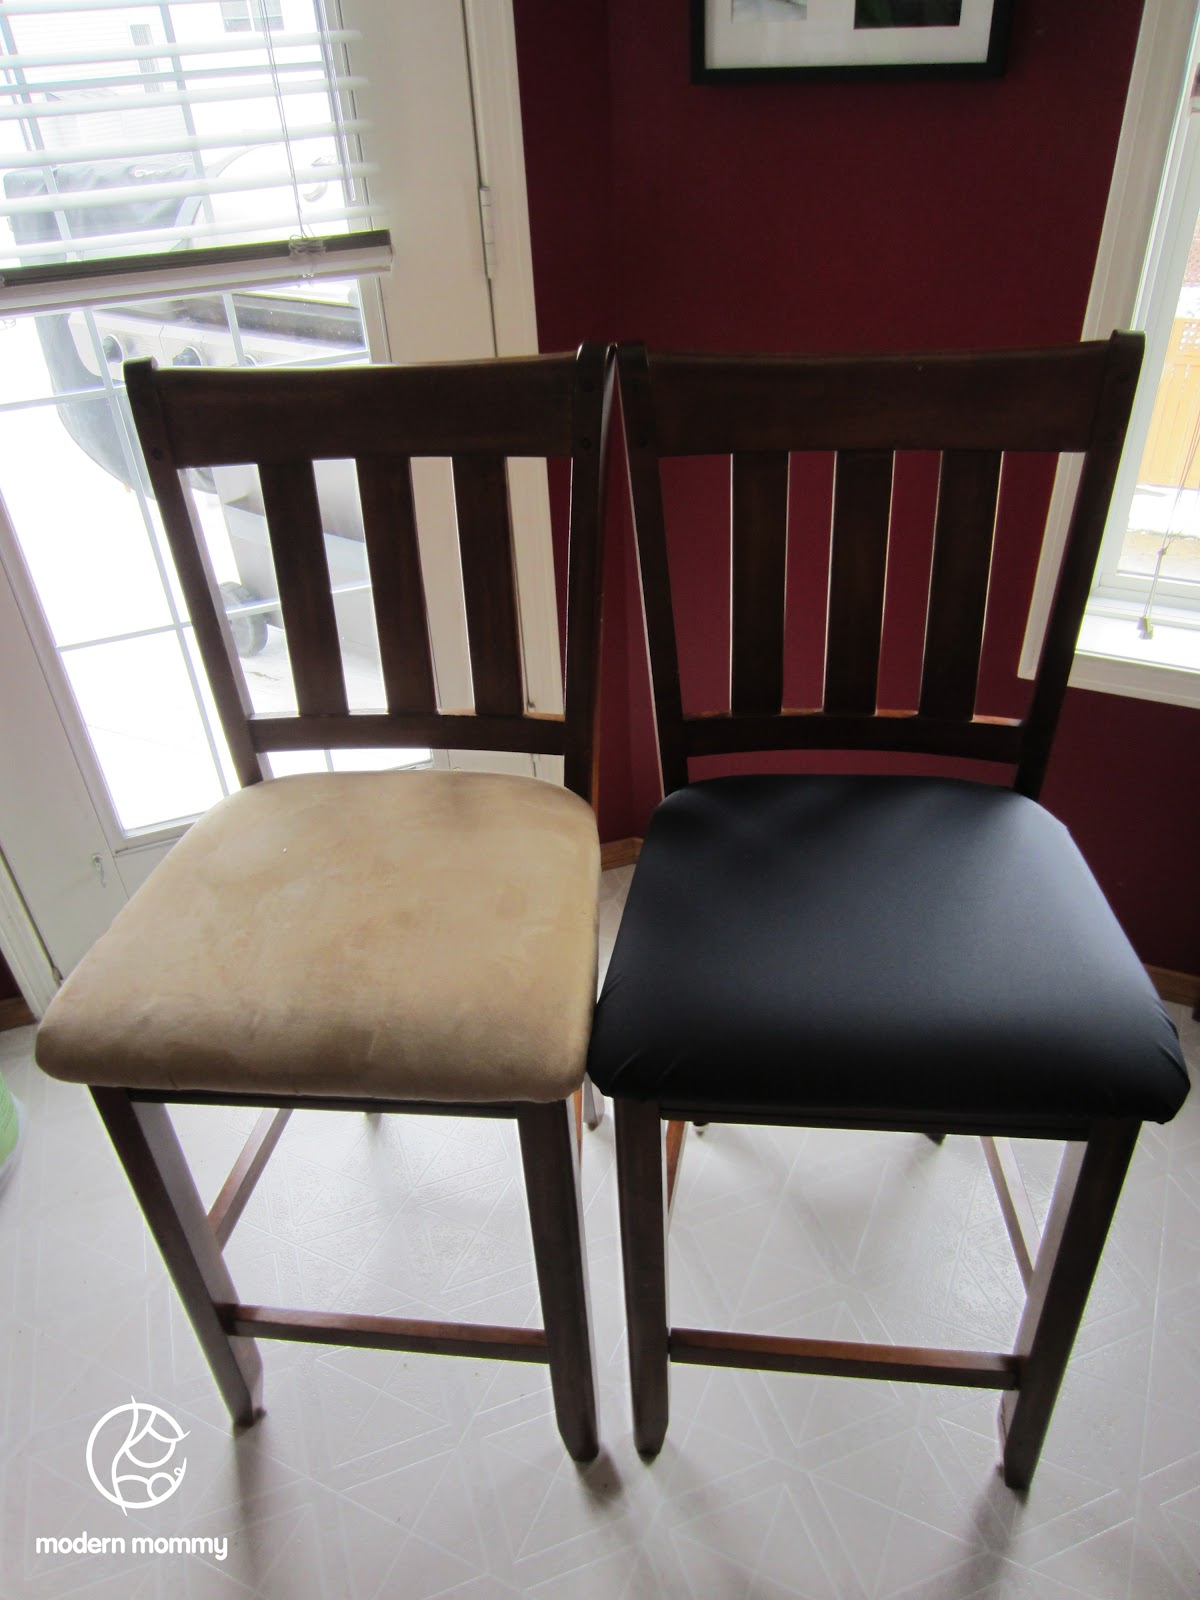 Modern Mommy Home DIY Reupholstered Dining Chairs : Compare from modernmommycanada.blogspot.ca size 1200 x 1600 jpeg 182kB